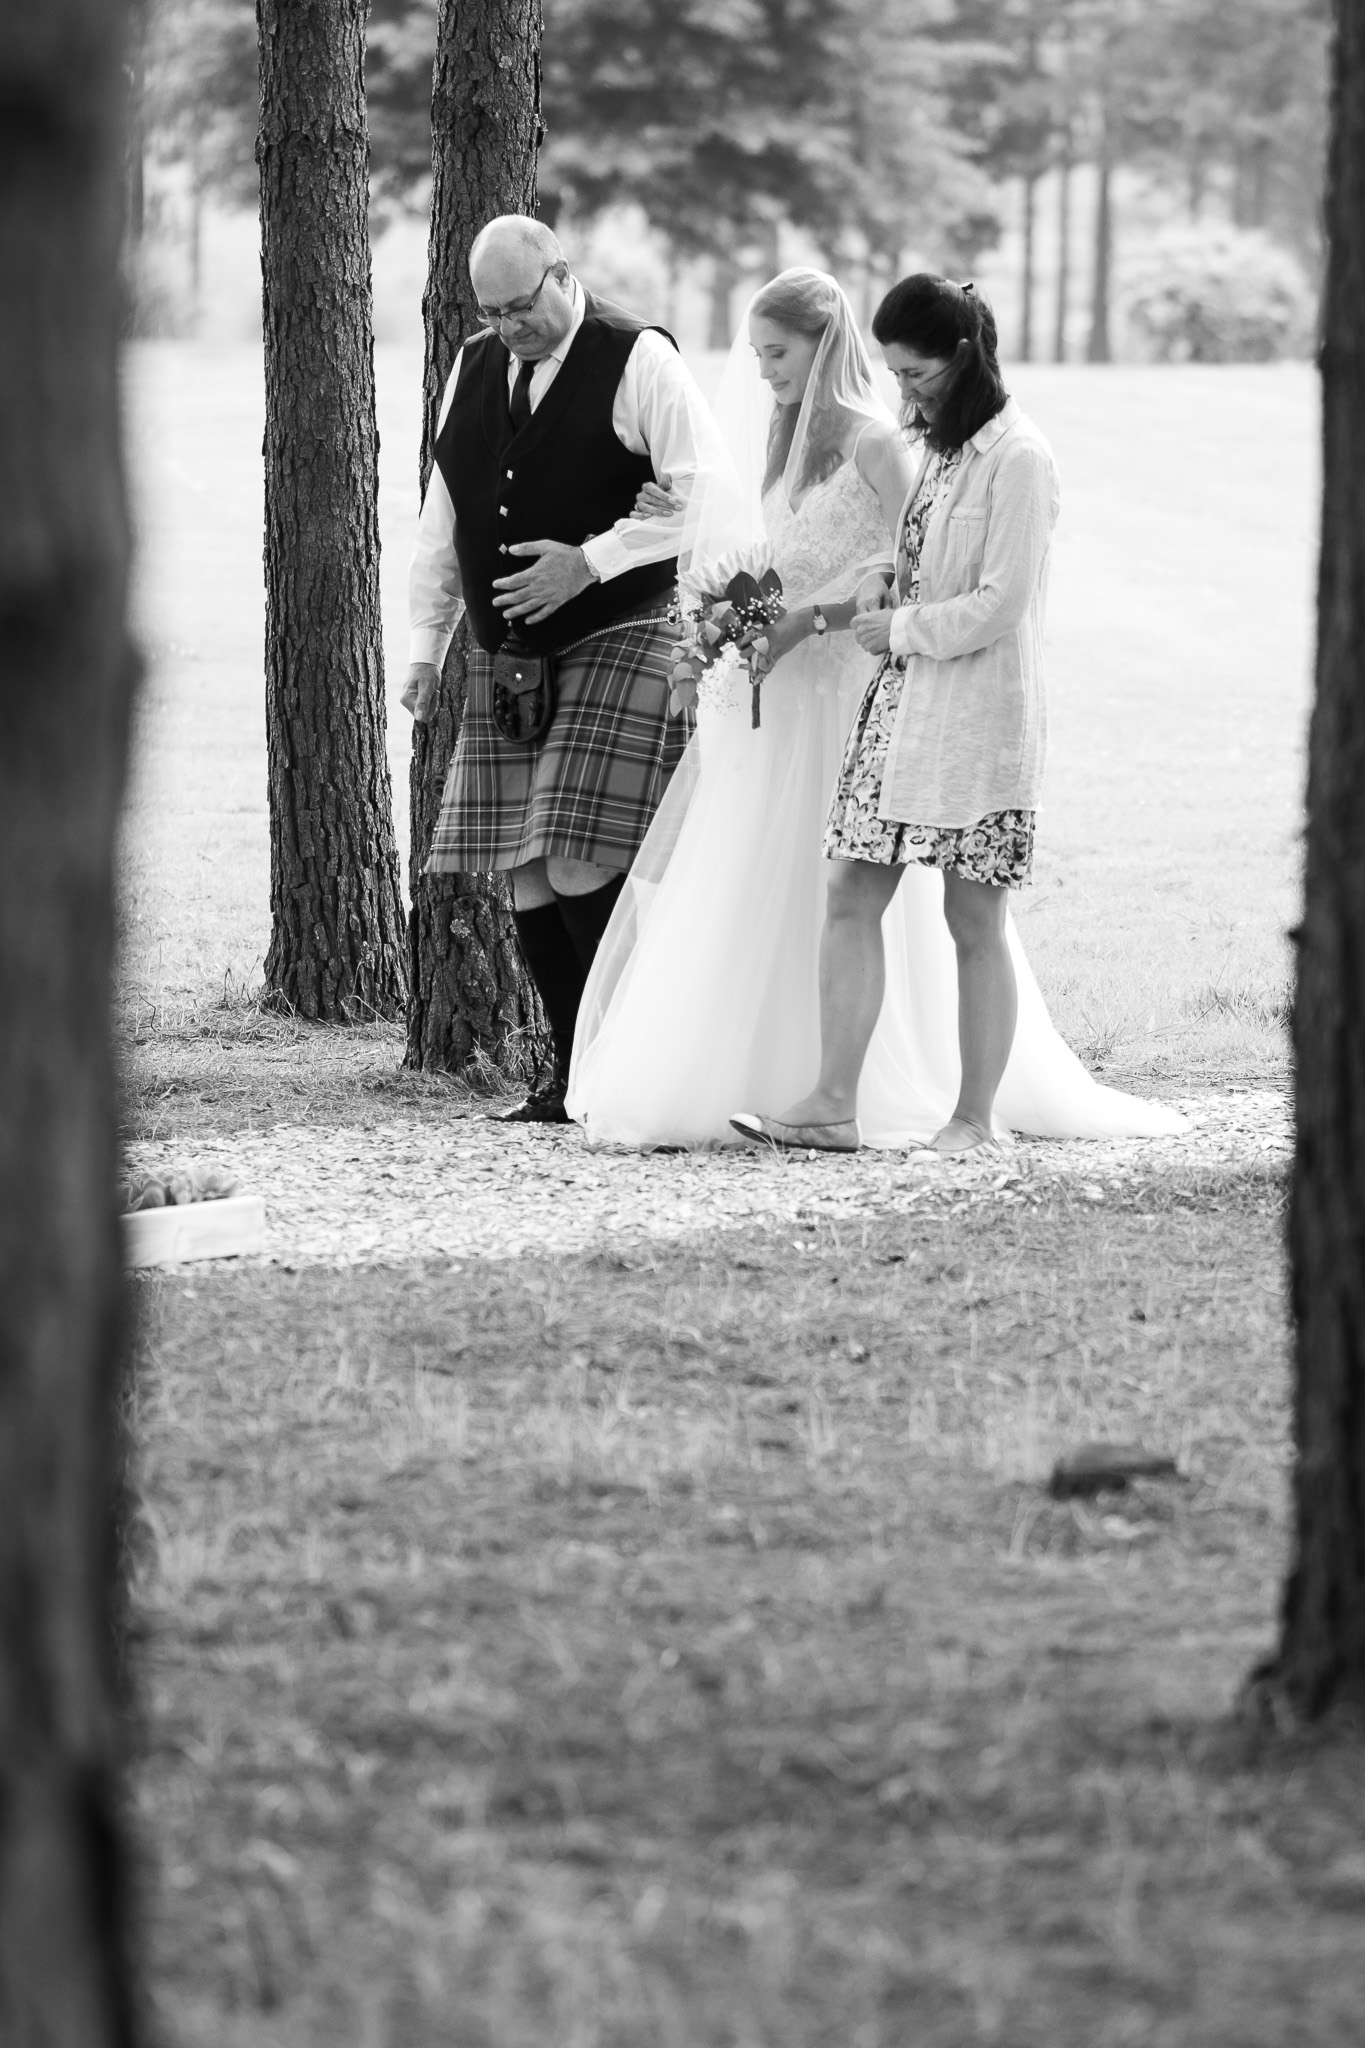 Erica and Steve - Wedding - Cath Tatham Photography